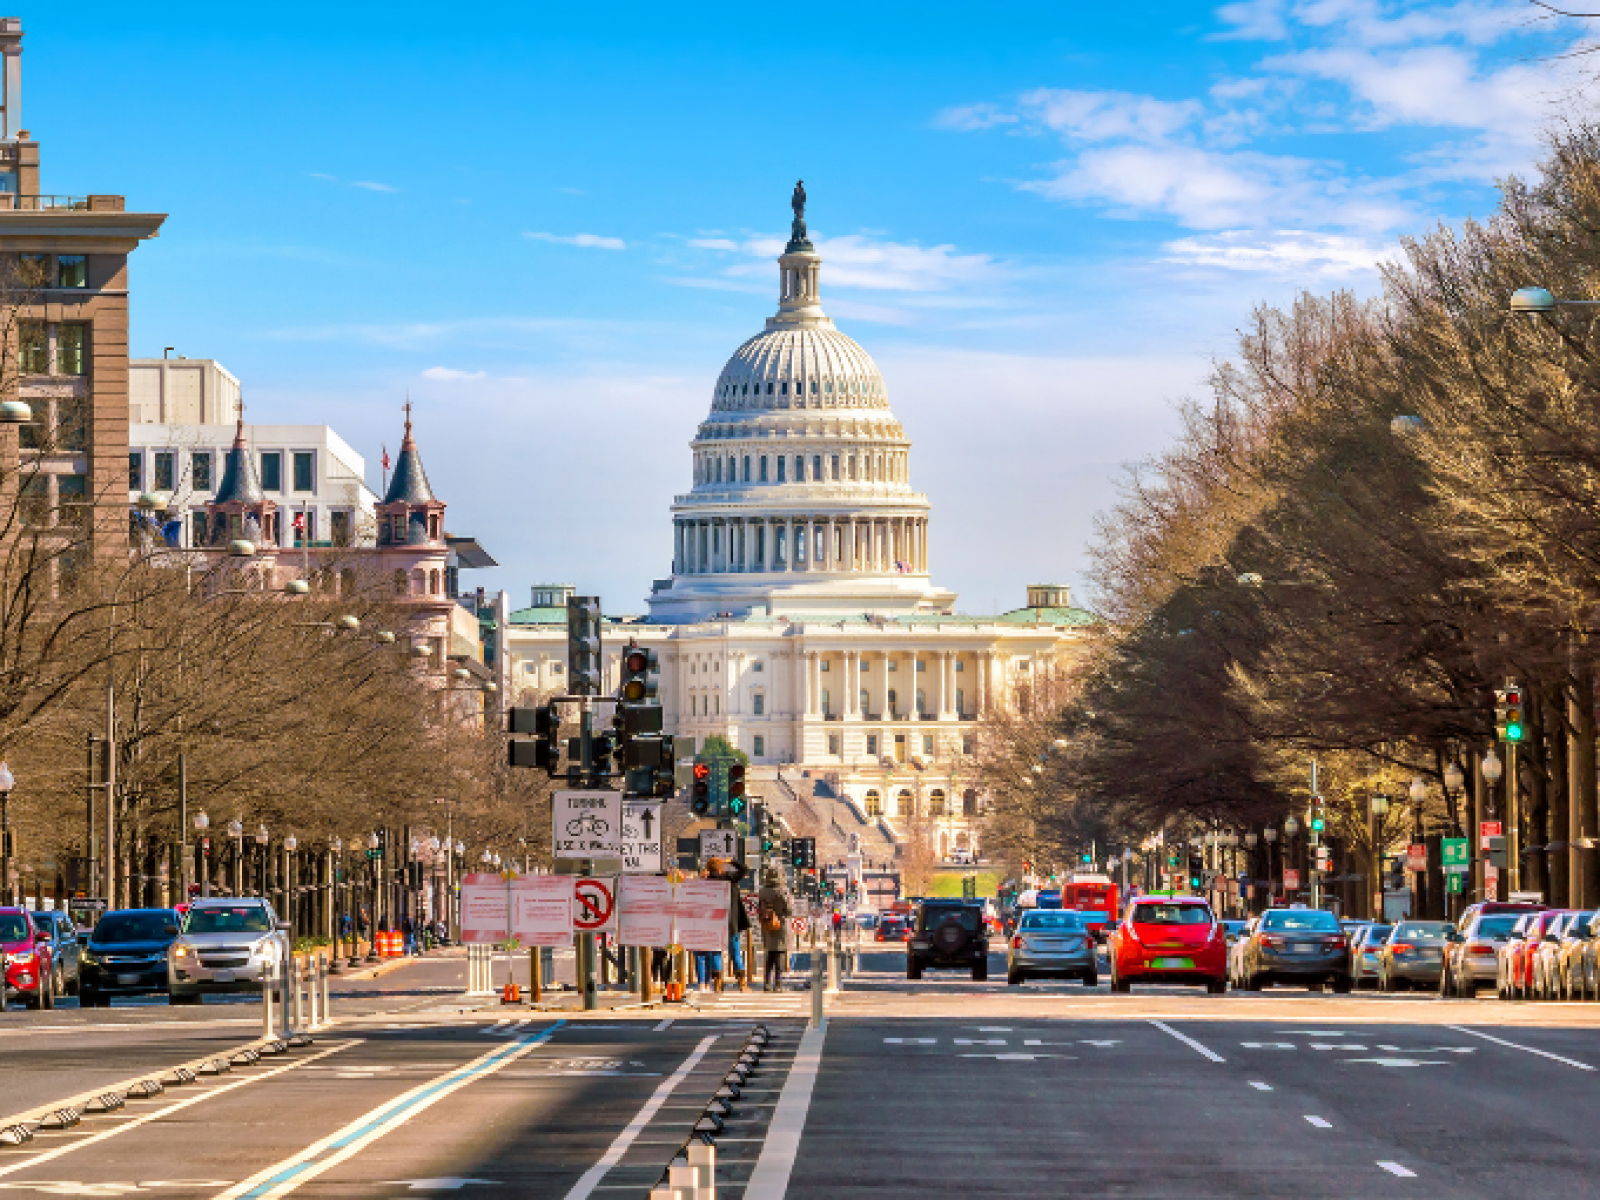 Photo of busy street with United States Capitol in the background